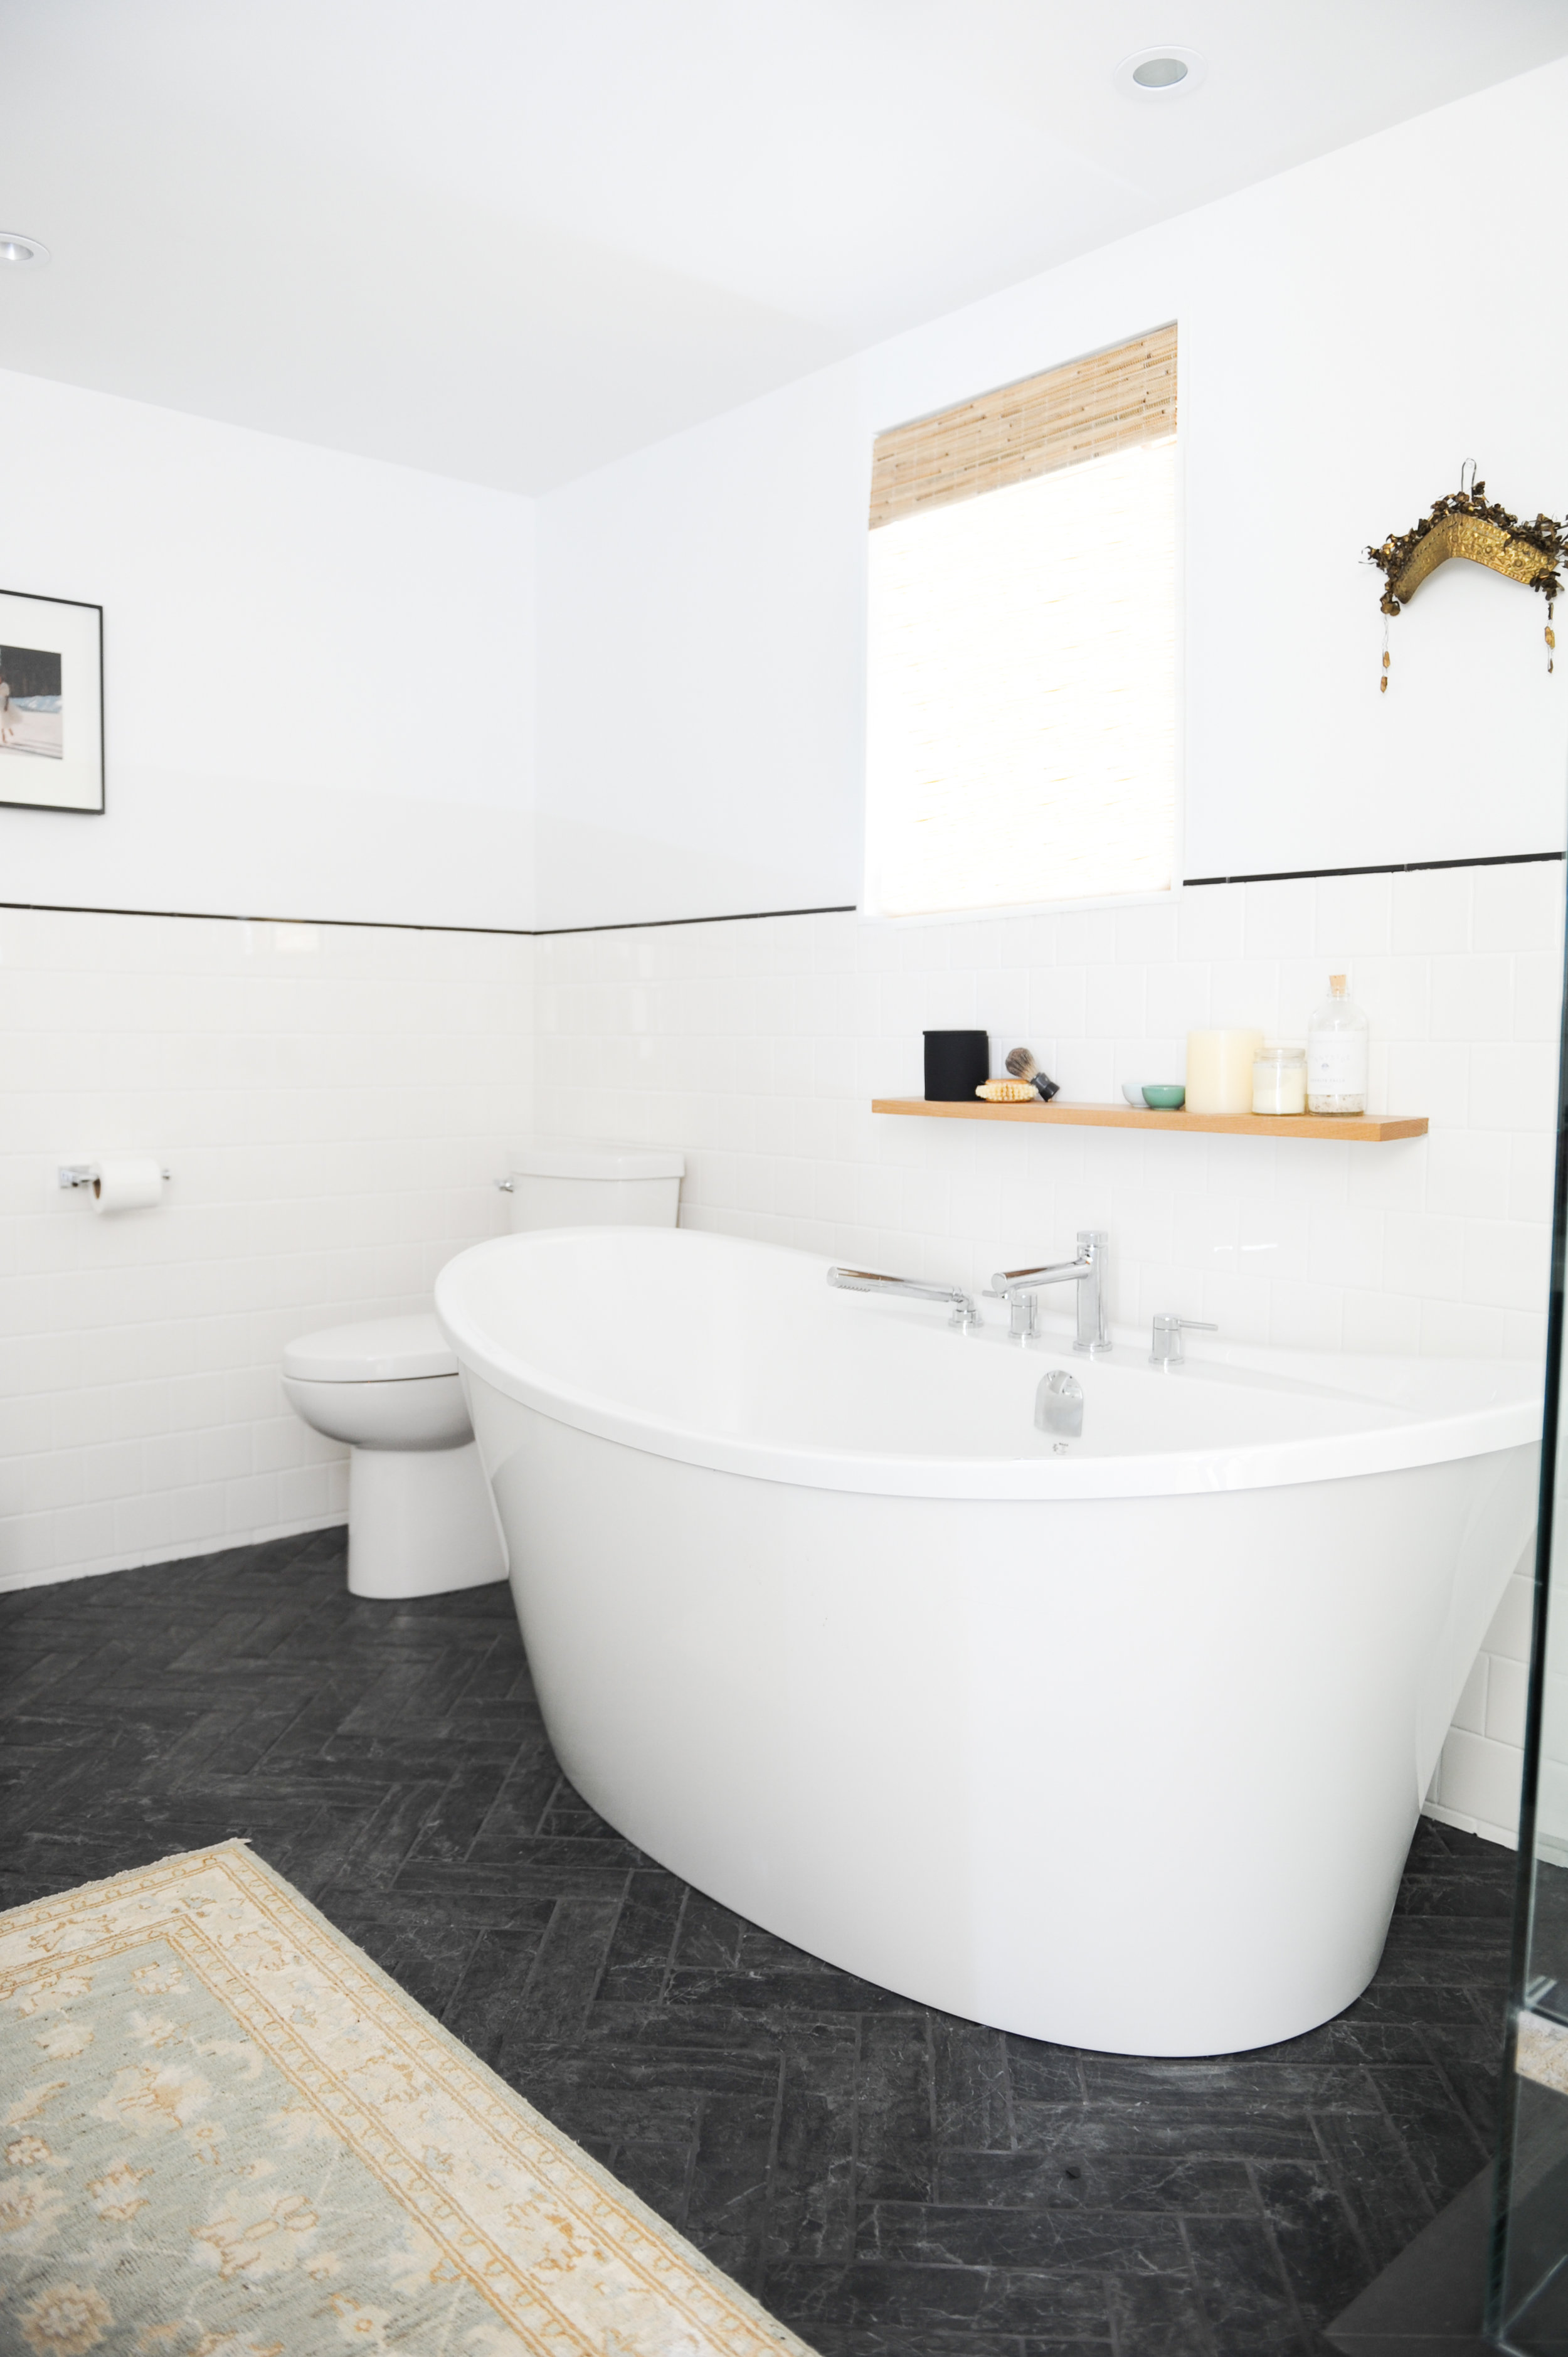 A large, luxurious soaker tub sits in the centre of this white tiled bathroom, on top of beautiful black tiled floors.